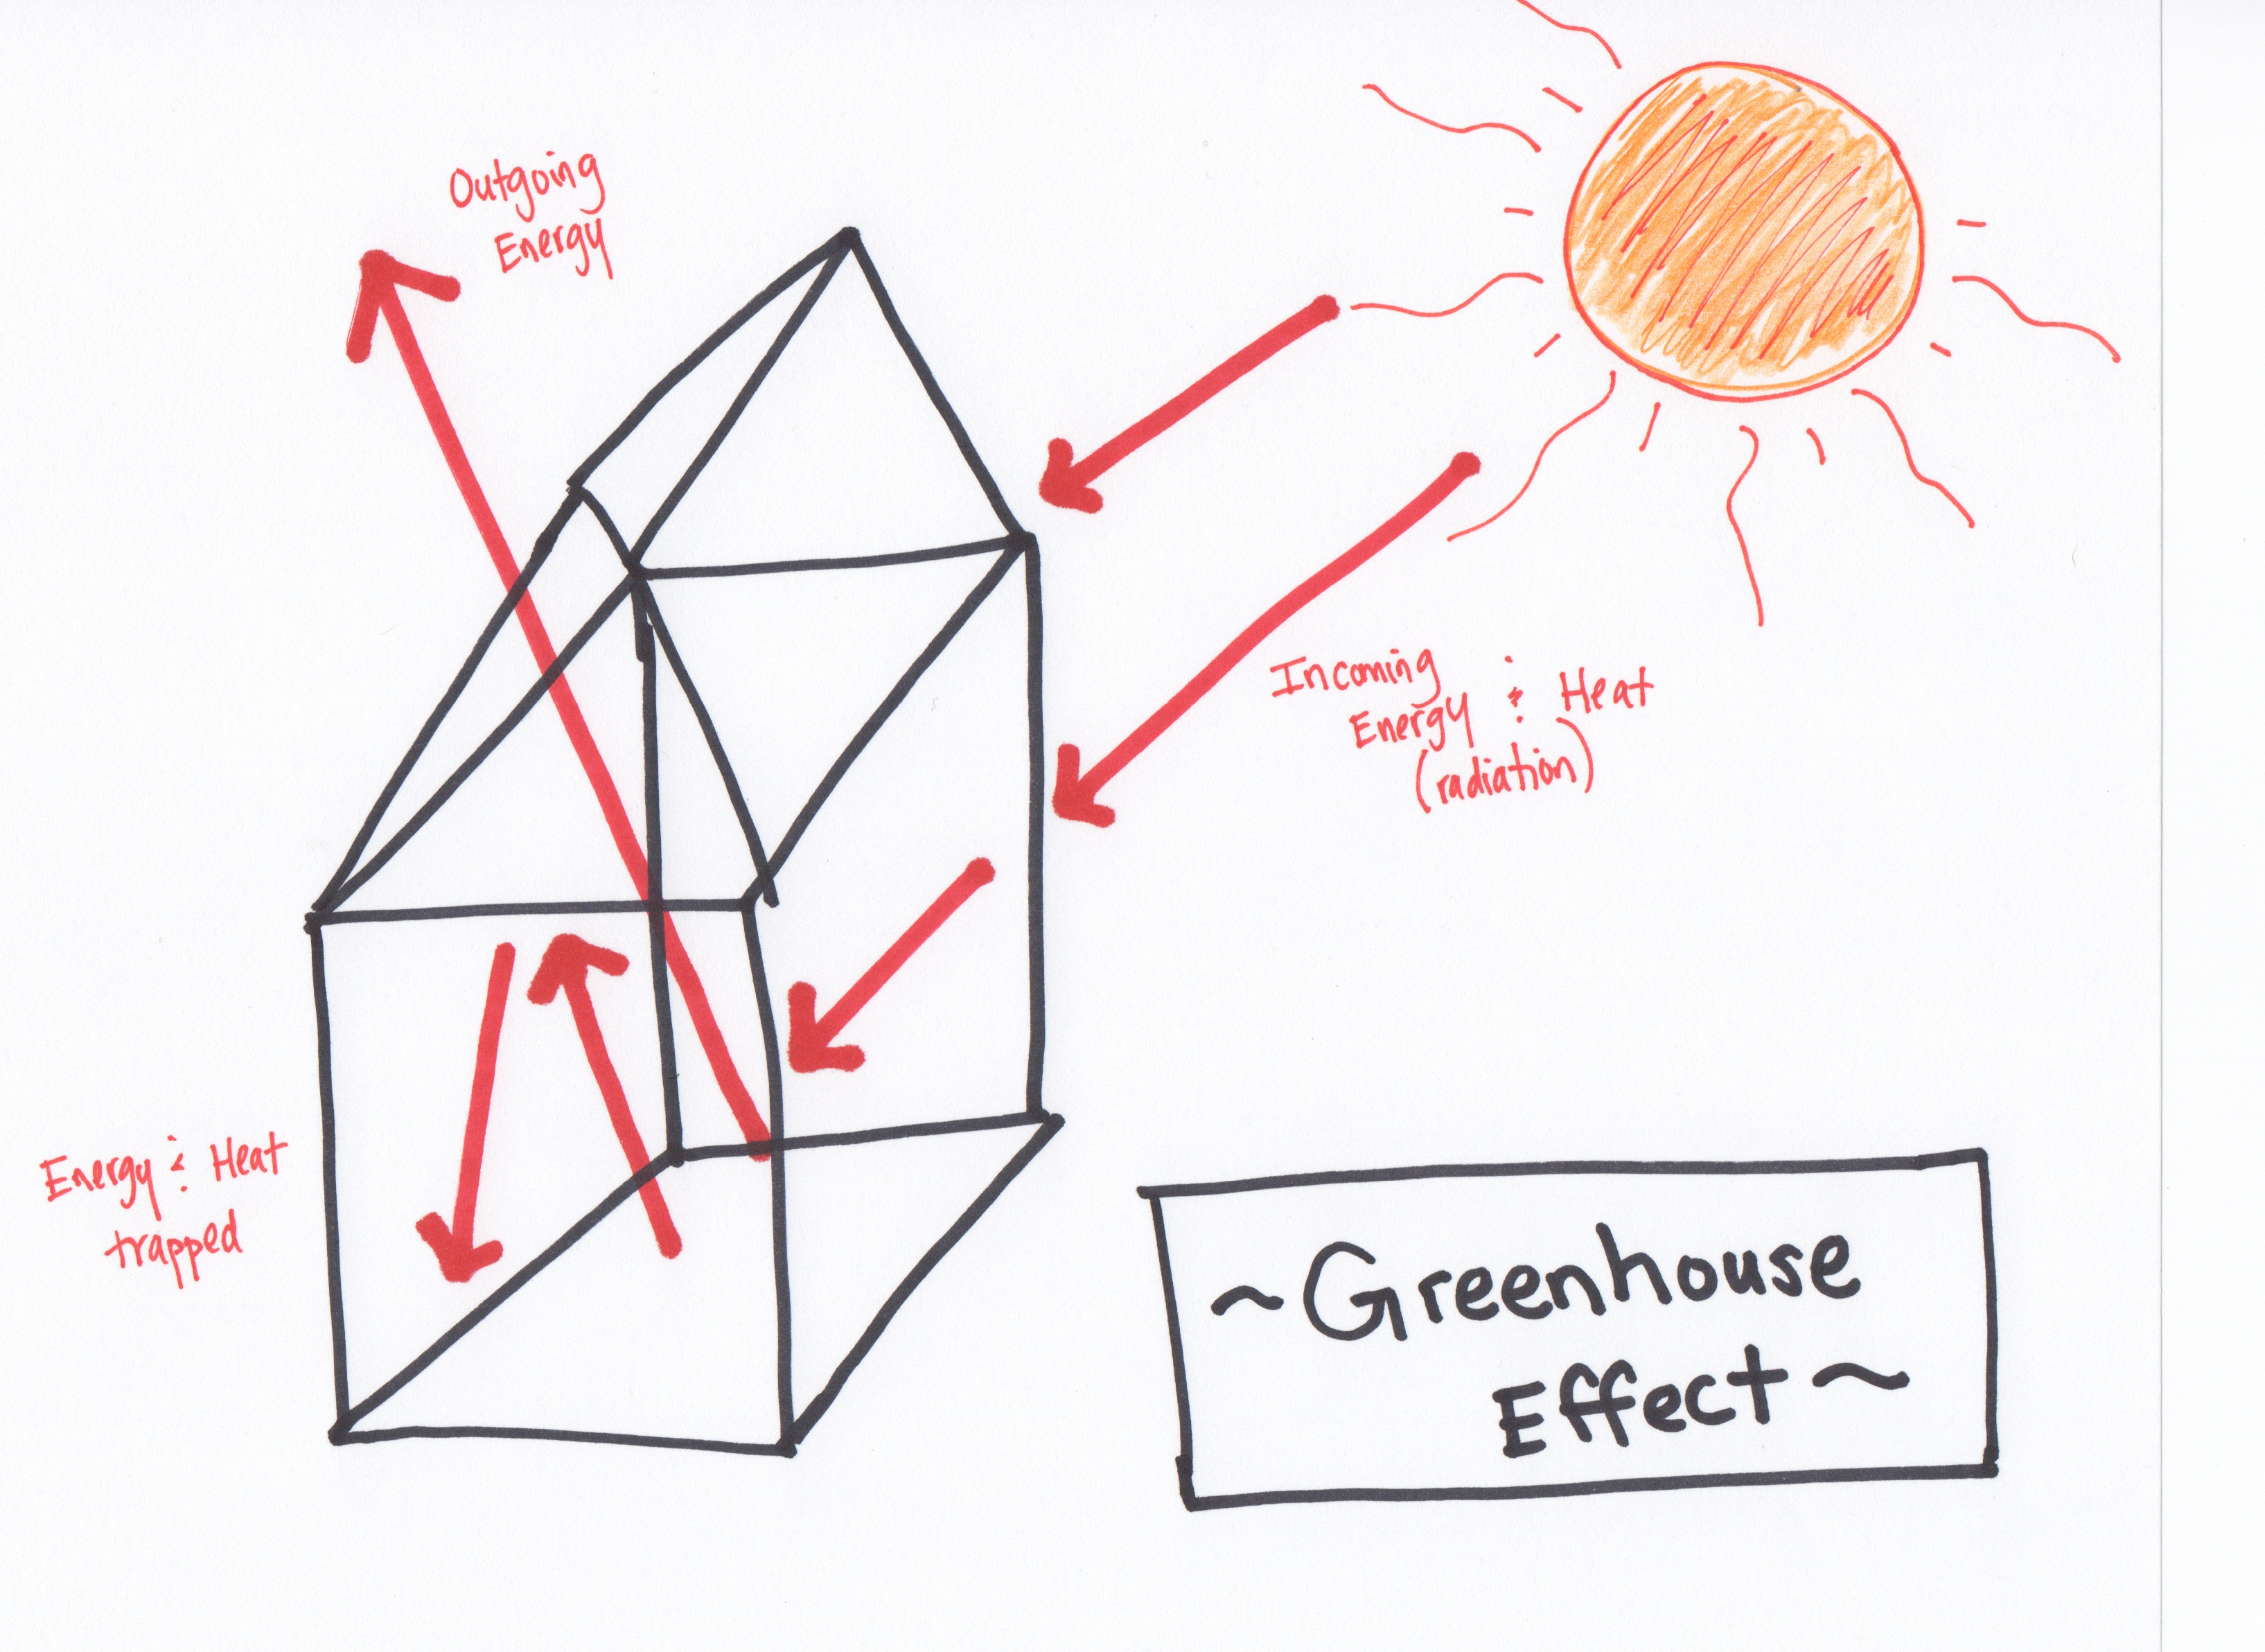 Greenhouse effect drawing at getdrawings free for personal use 3269x2384 climate change silence is ignorance really bliss early career ccuart Choice Image